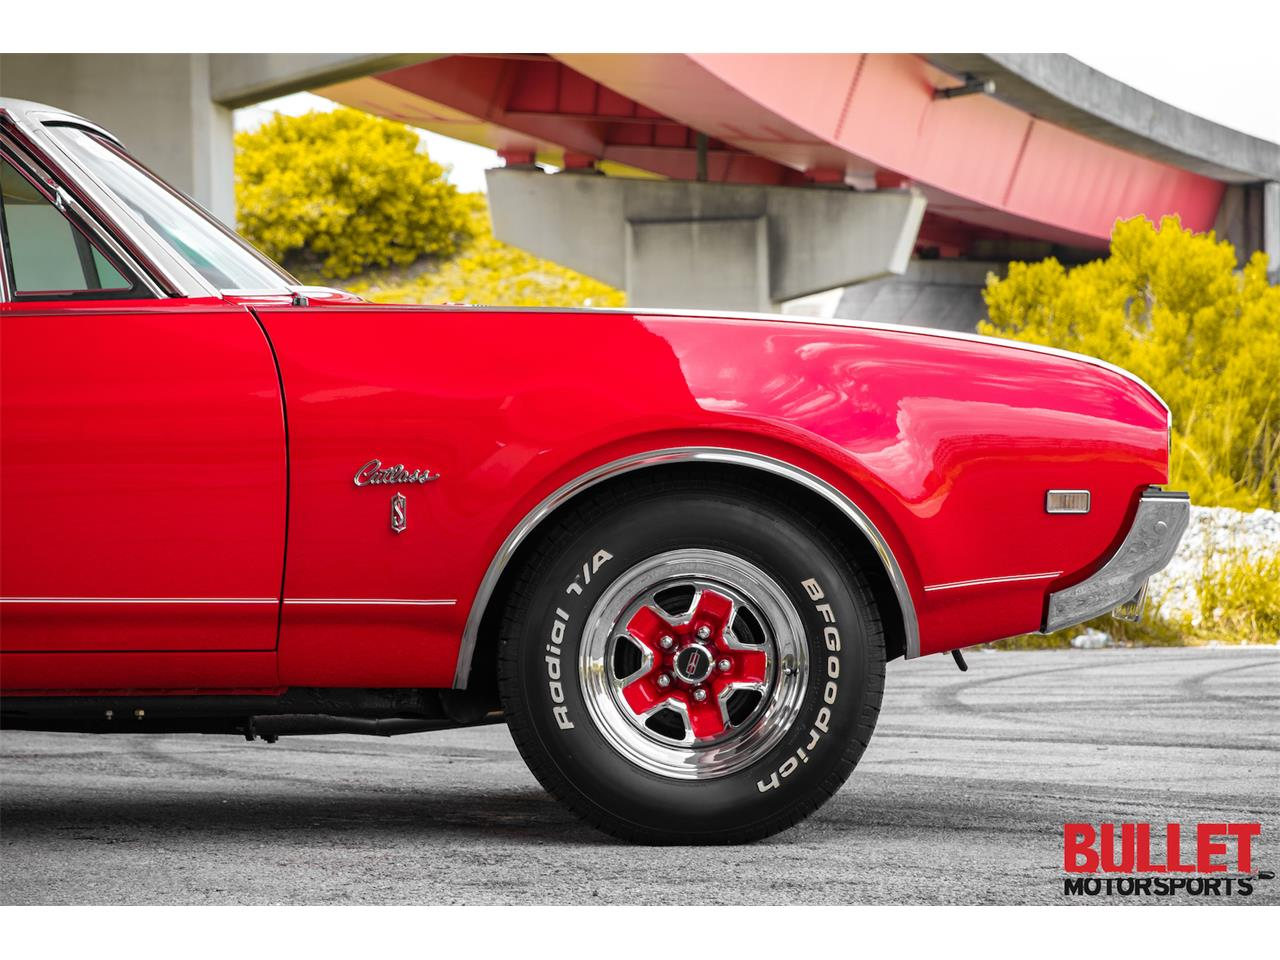 Large Picture of Classic '68 Cutlass Supreme located in Florida Offered by Bullet Motorsports Inc - PZS9